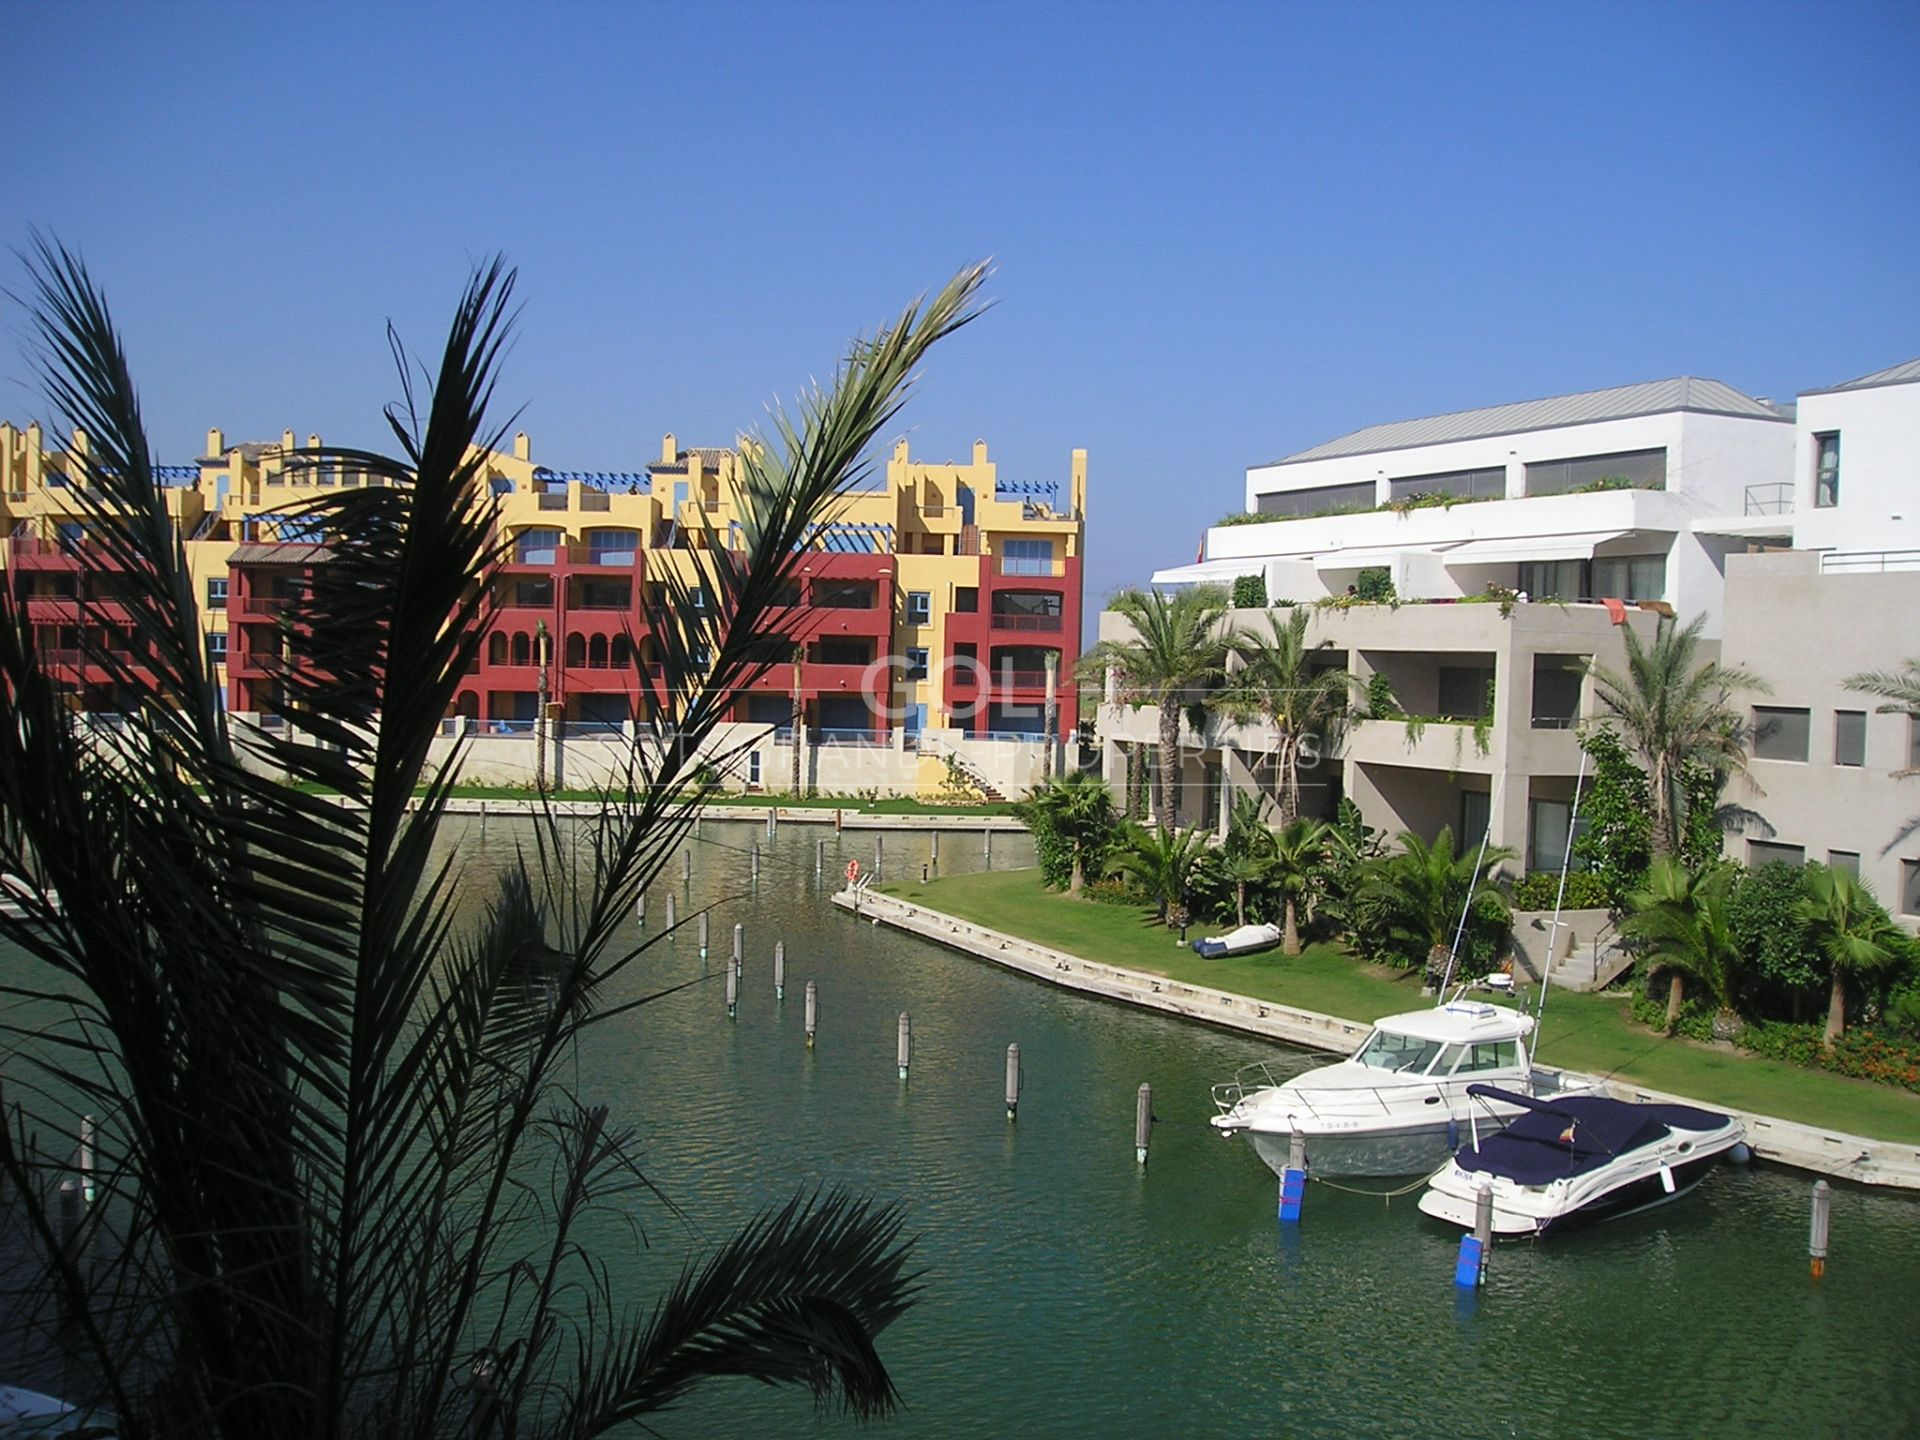 Apartment overlooking the canals with berth 9X4 included in price